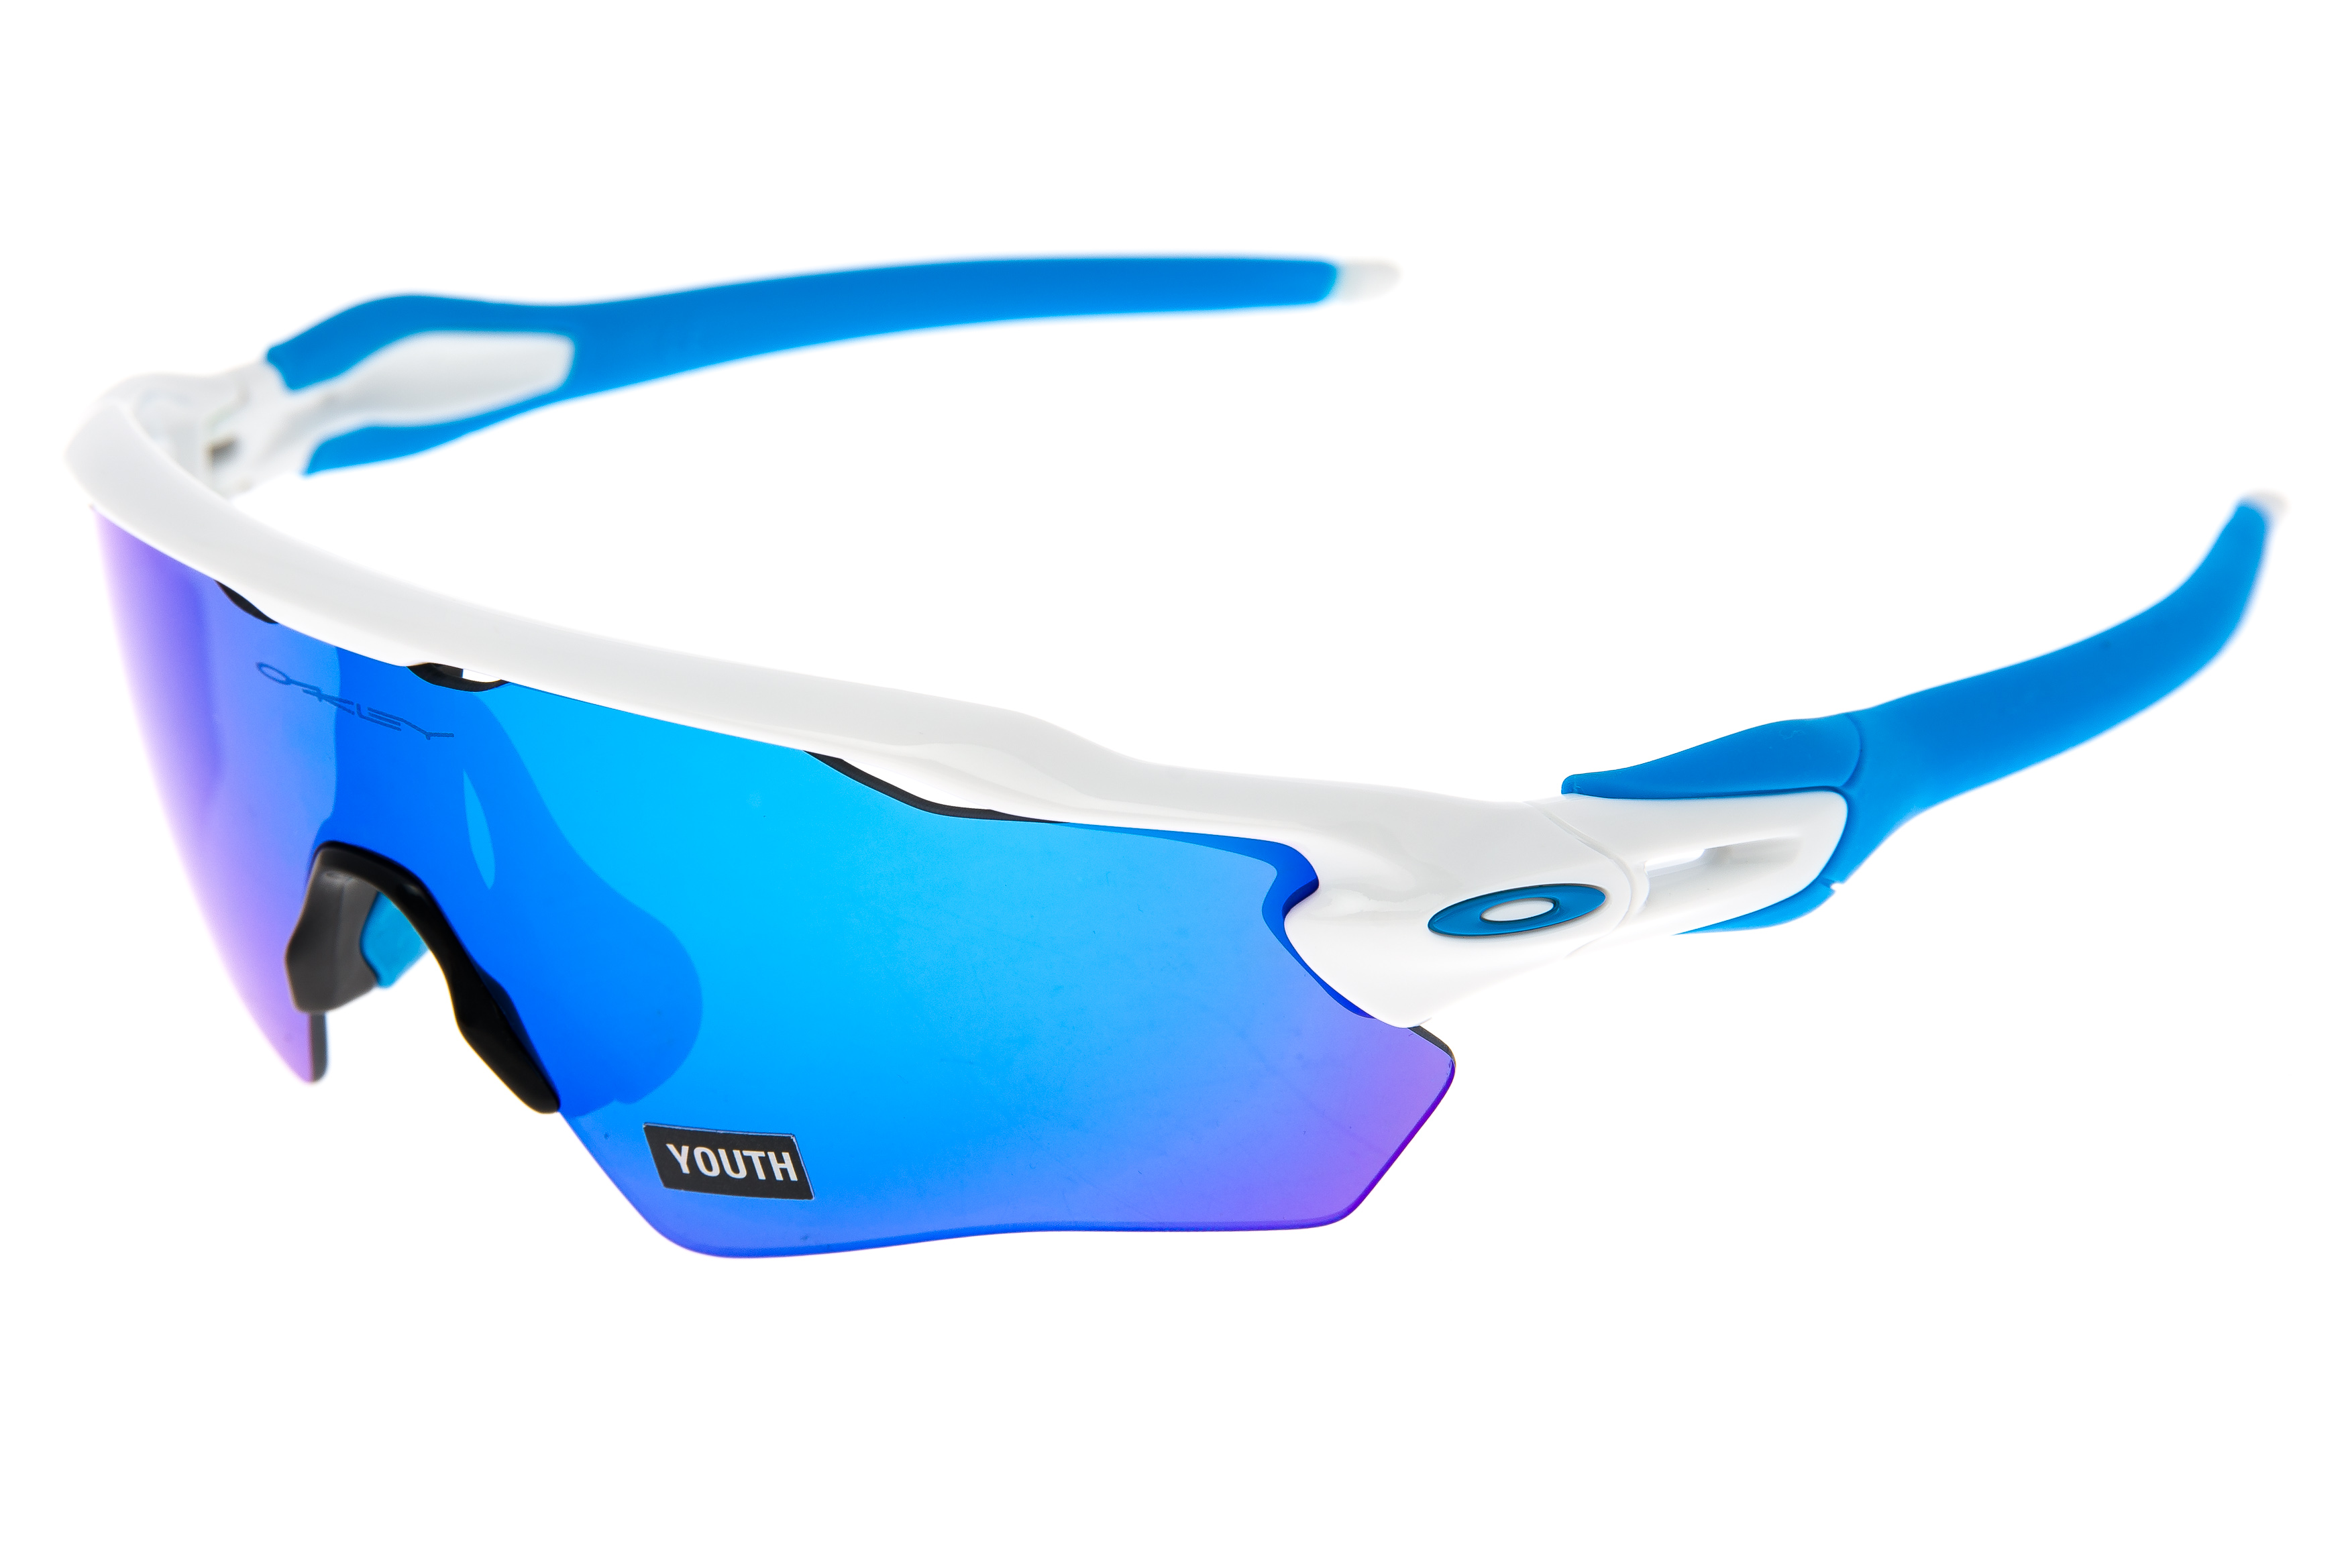 62a75a714ea Details about Oakley Radar EV XS Path Sunglasses White Frame Blue Iridium  Lens - Excellent